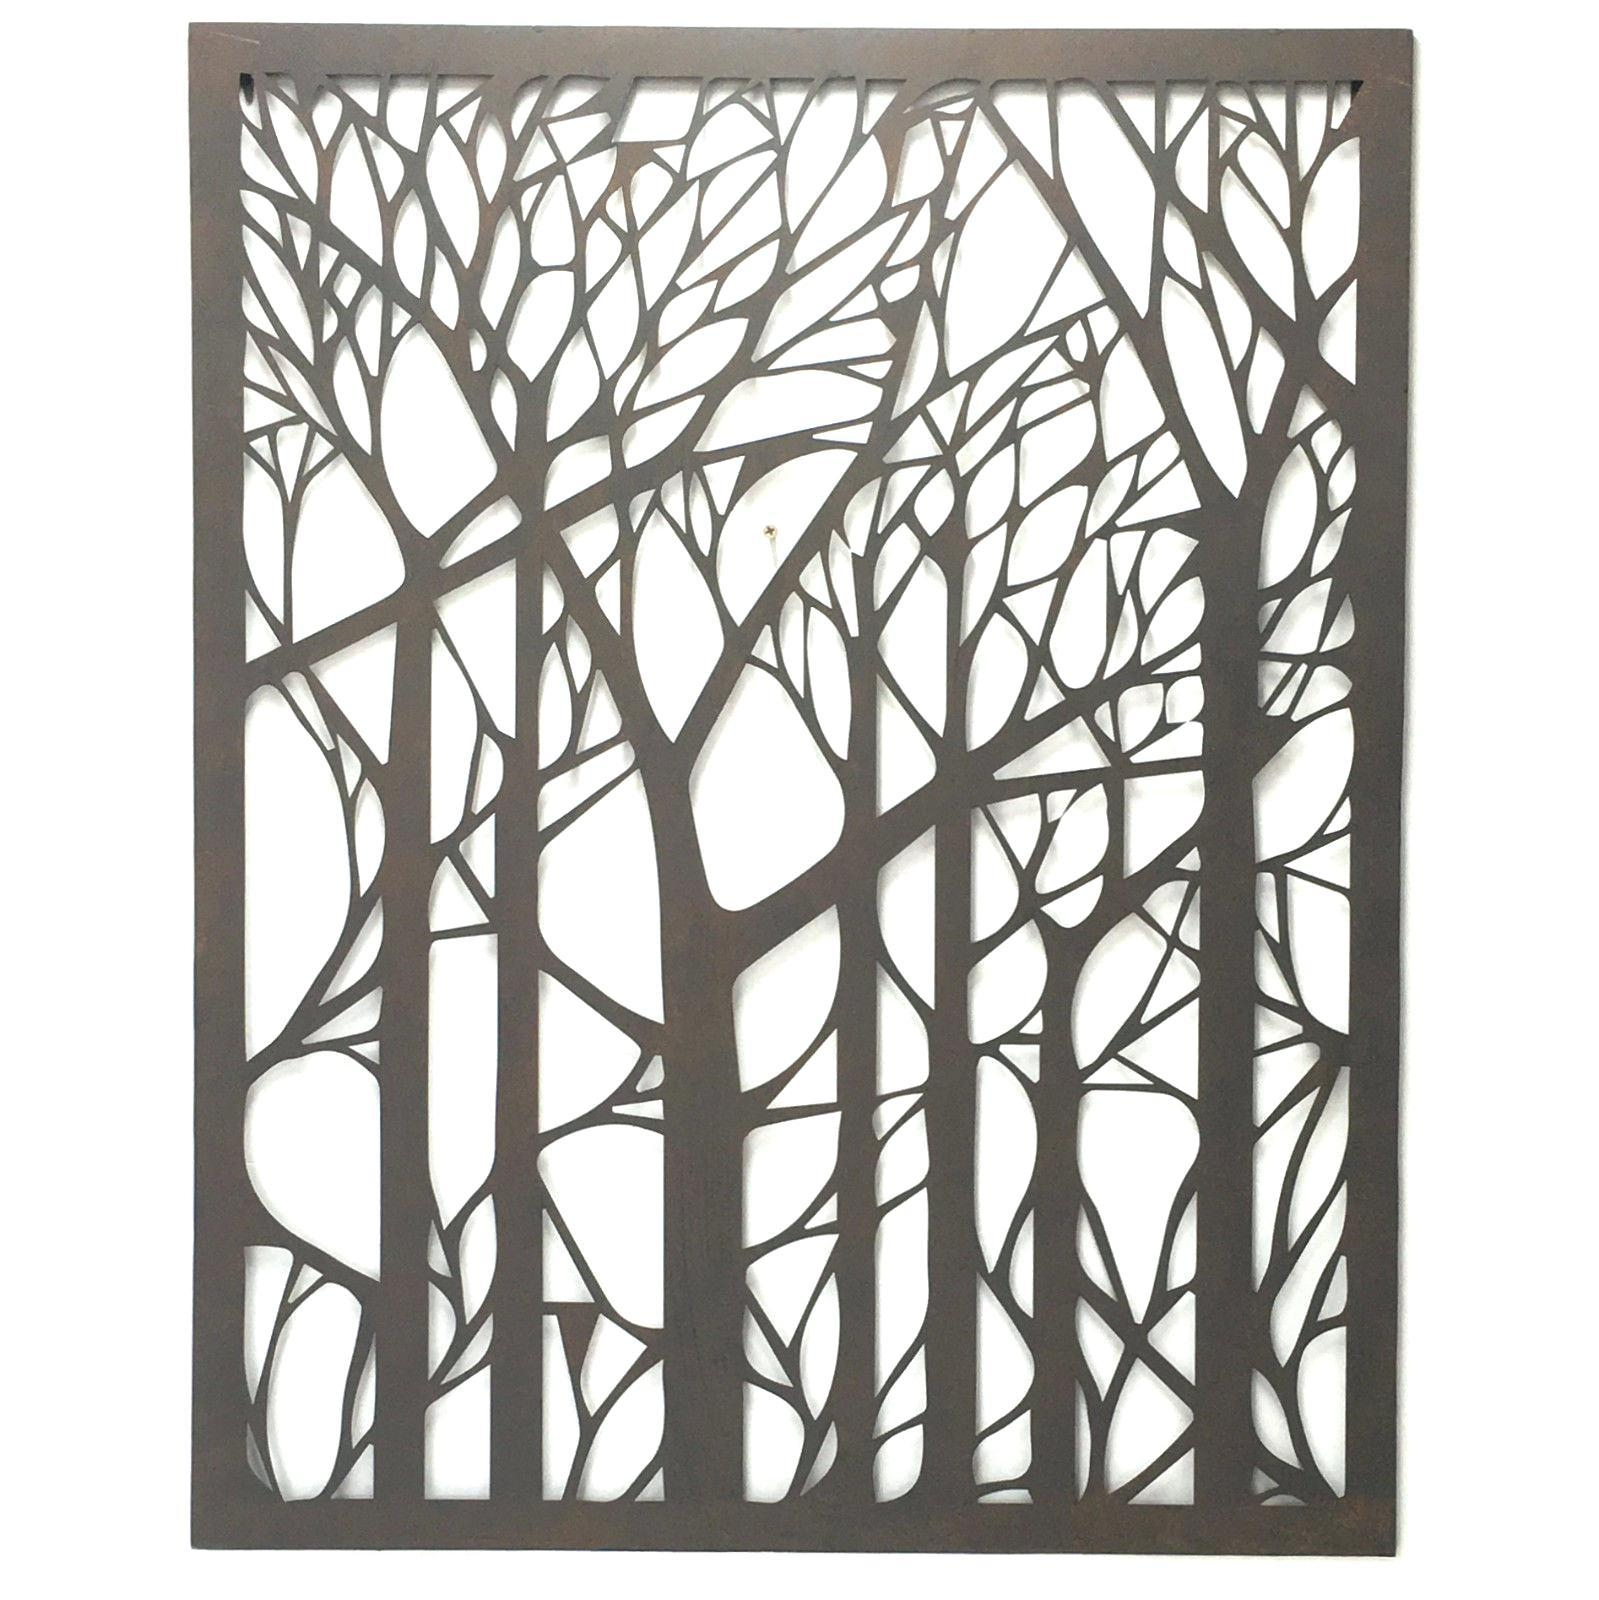 20 Best Metal Wall Art for Outdoors